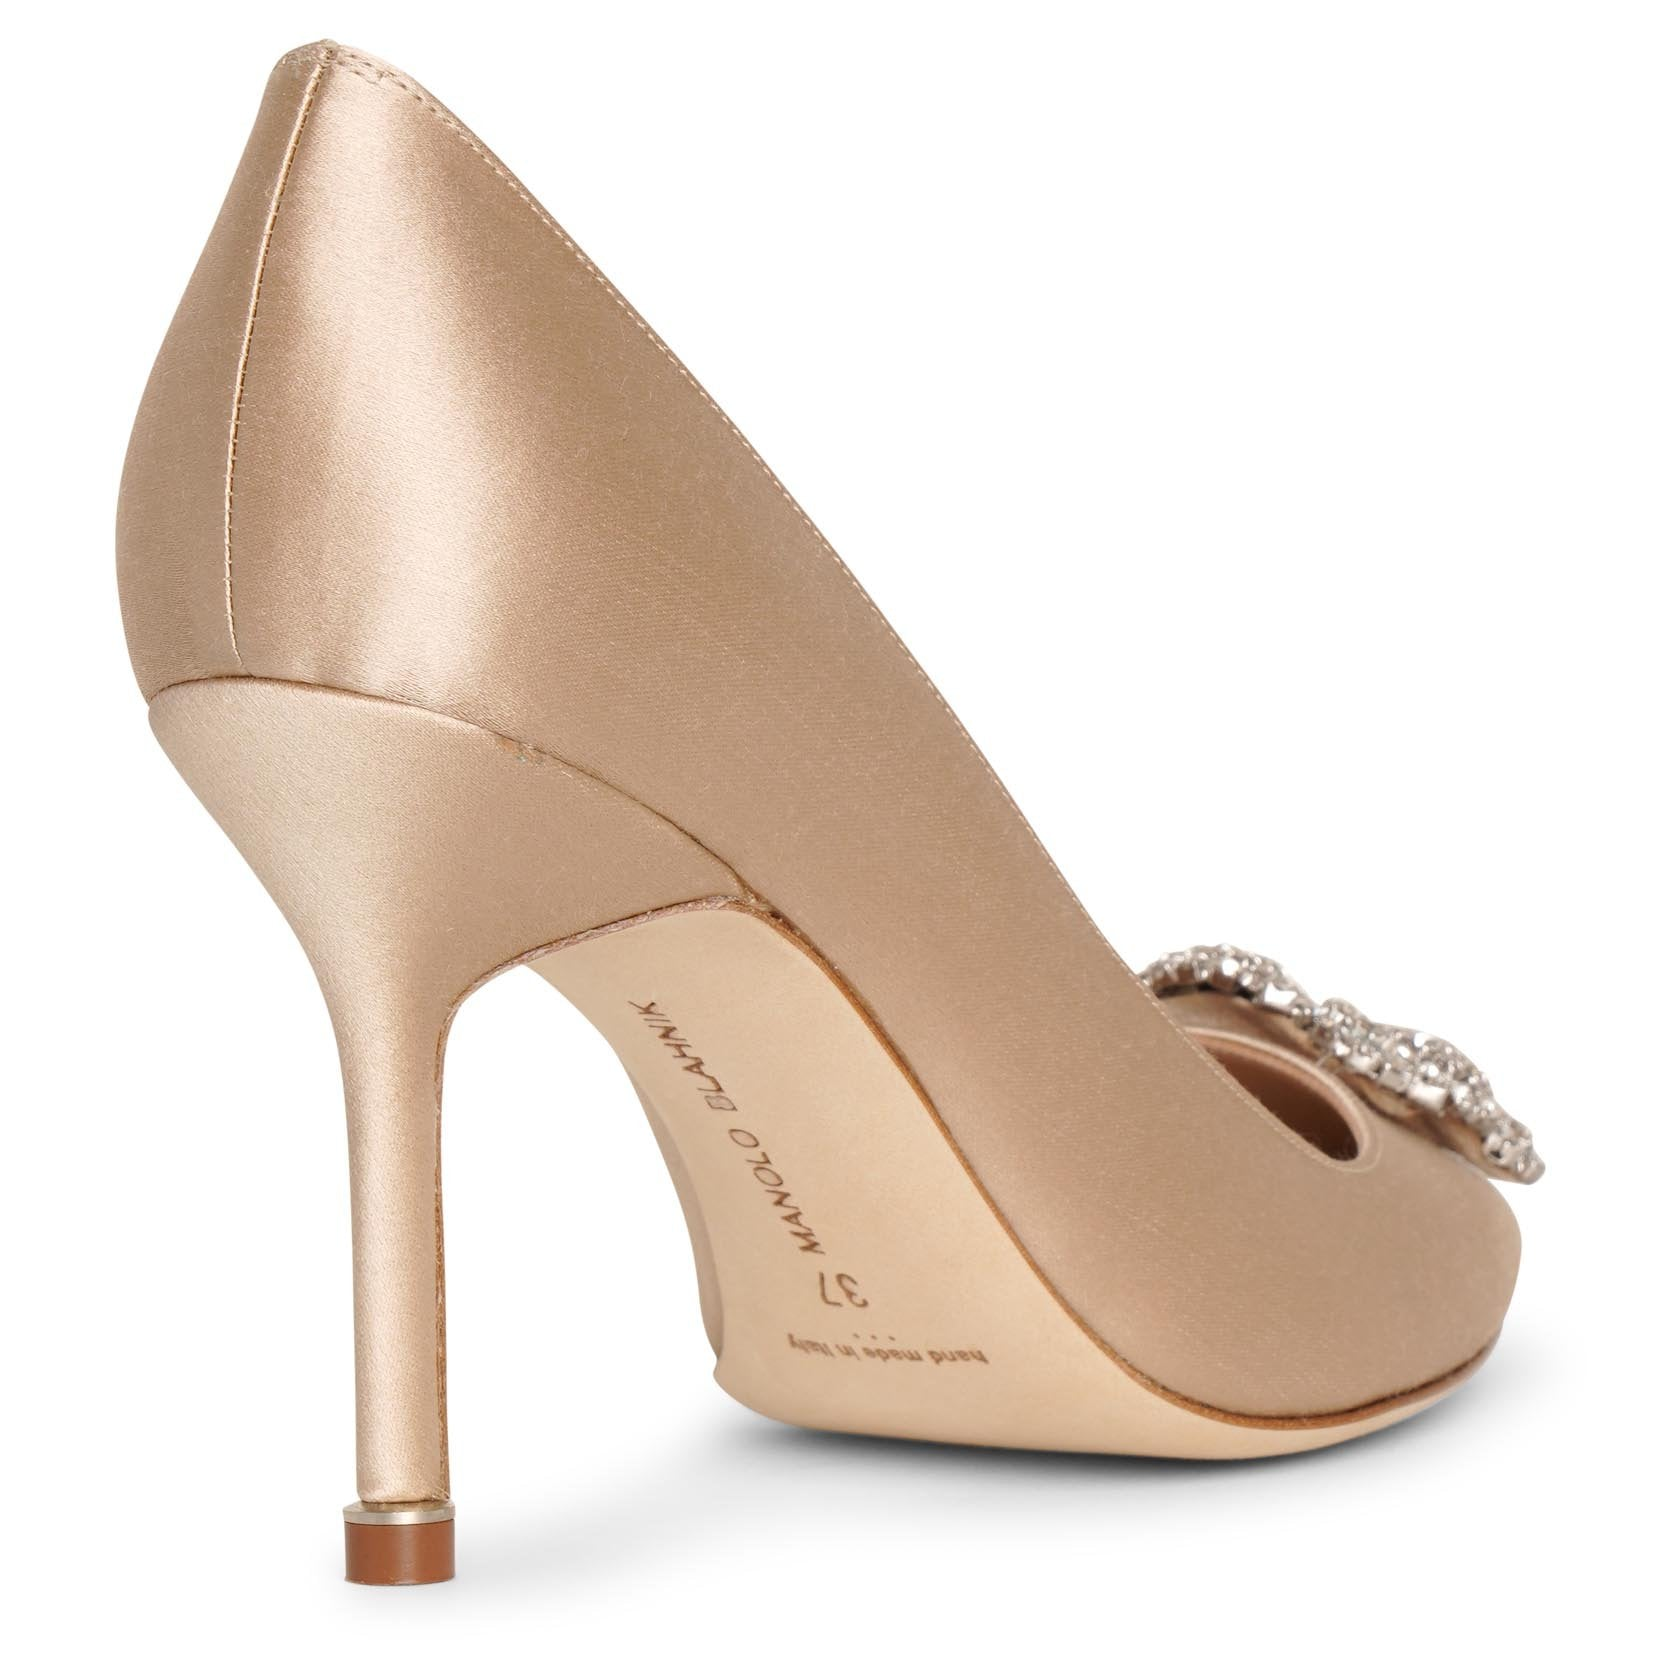 Hangisi 90 champagne satin pumps